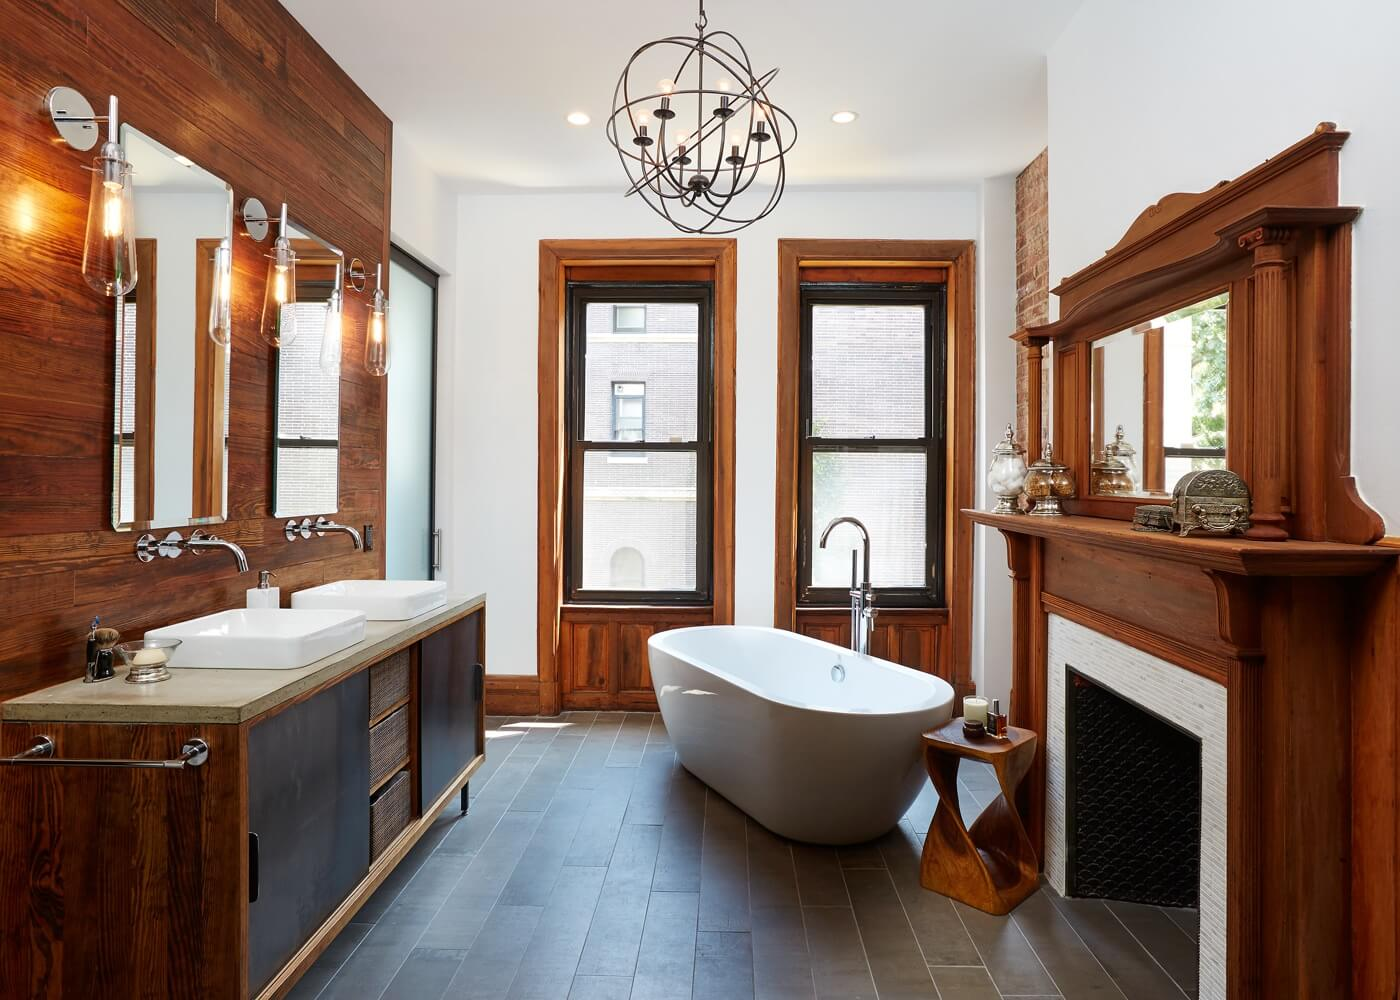 Renovation Maison 1930 Cara Greenberg Author At Brownstoner Page 15 Of 26